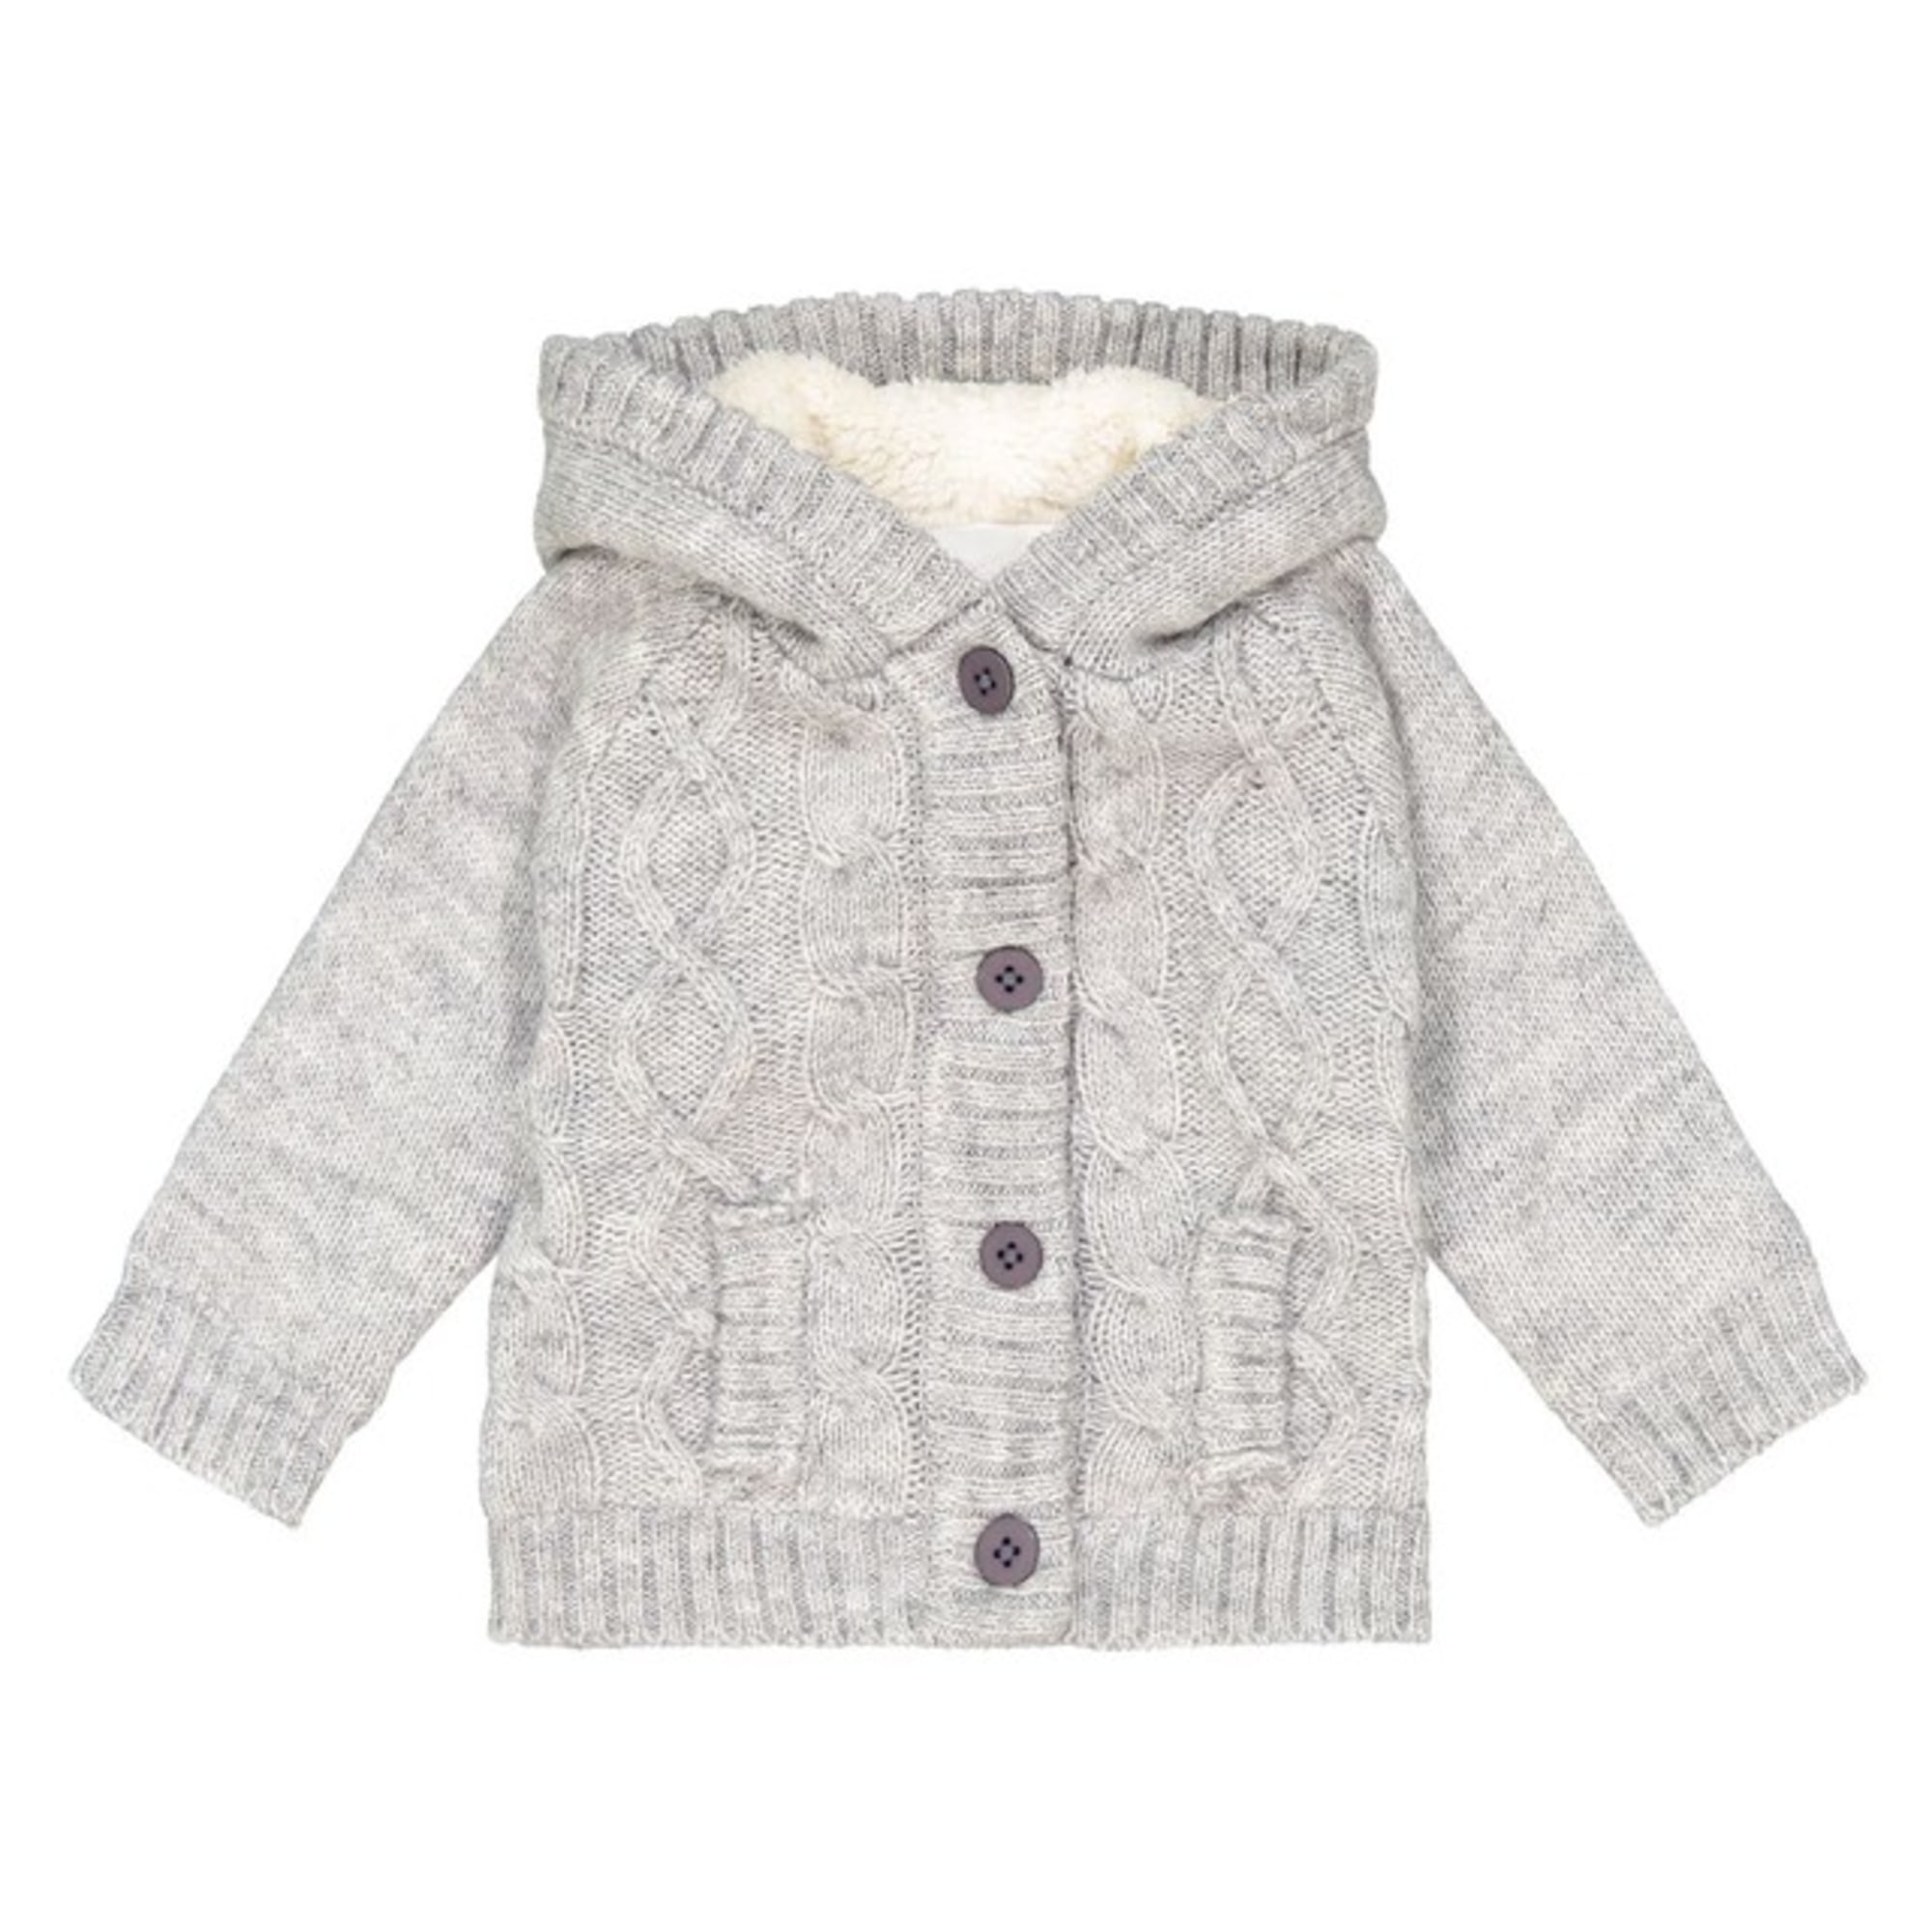 Gilet, cardigan LA REDOUTE Gris, anthracite